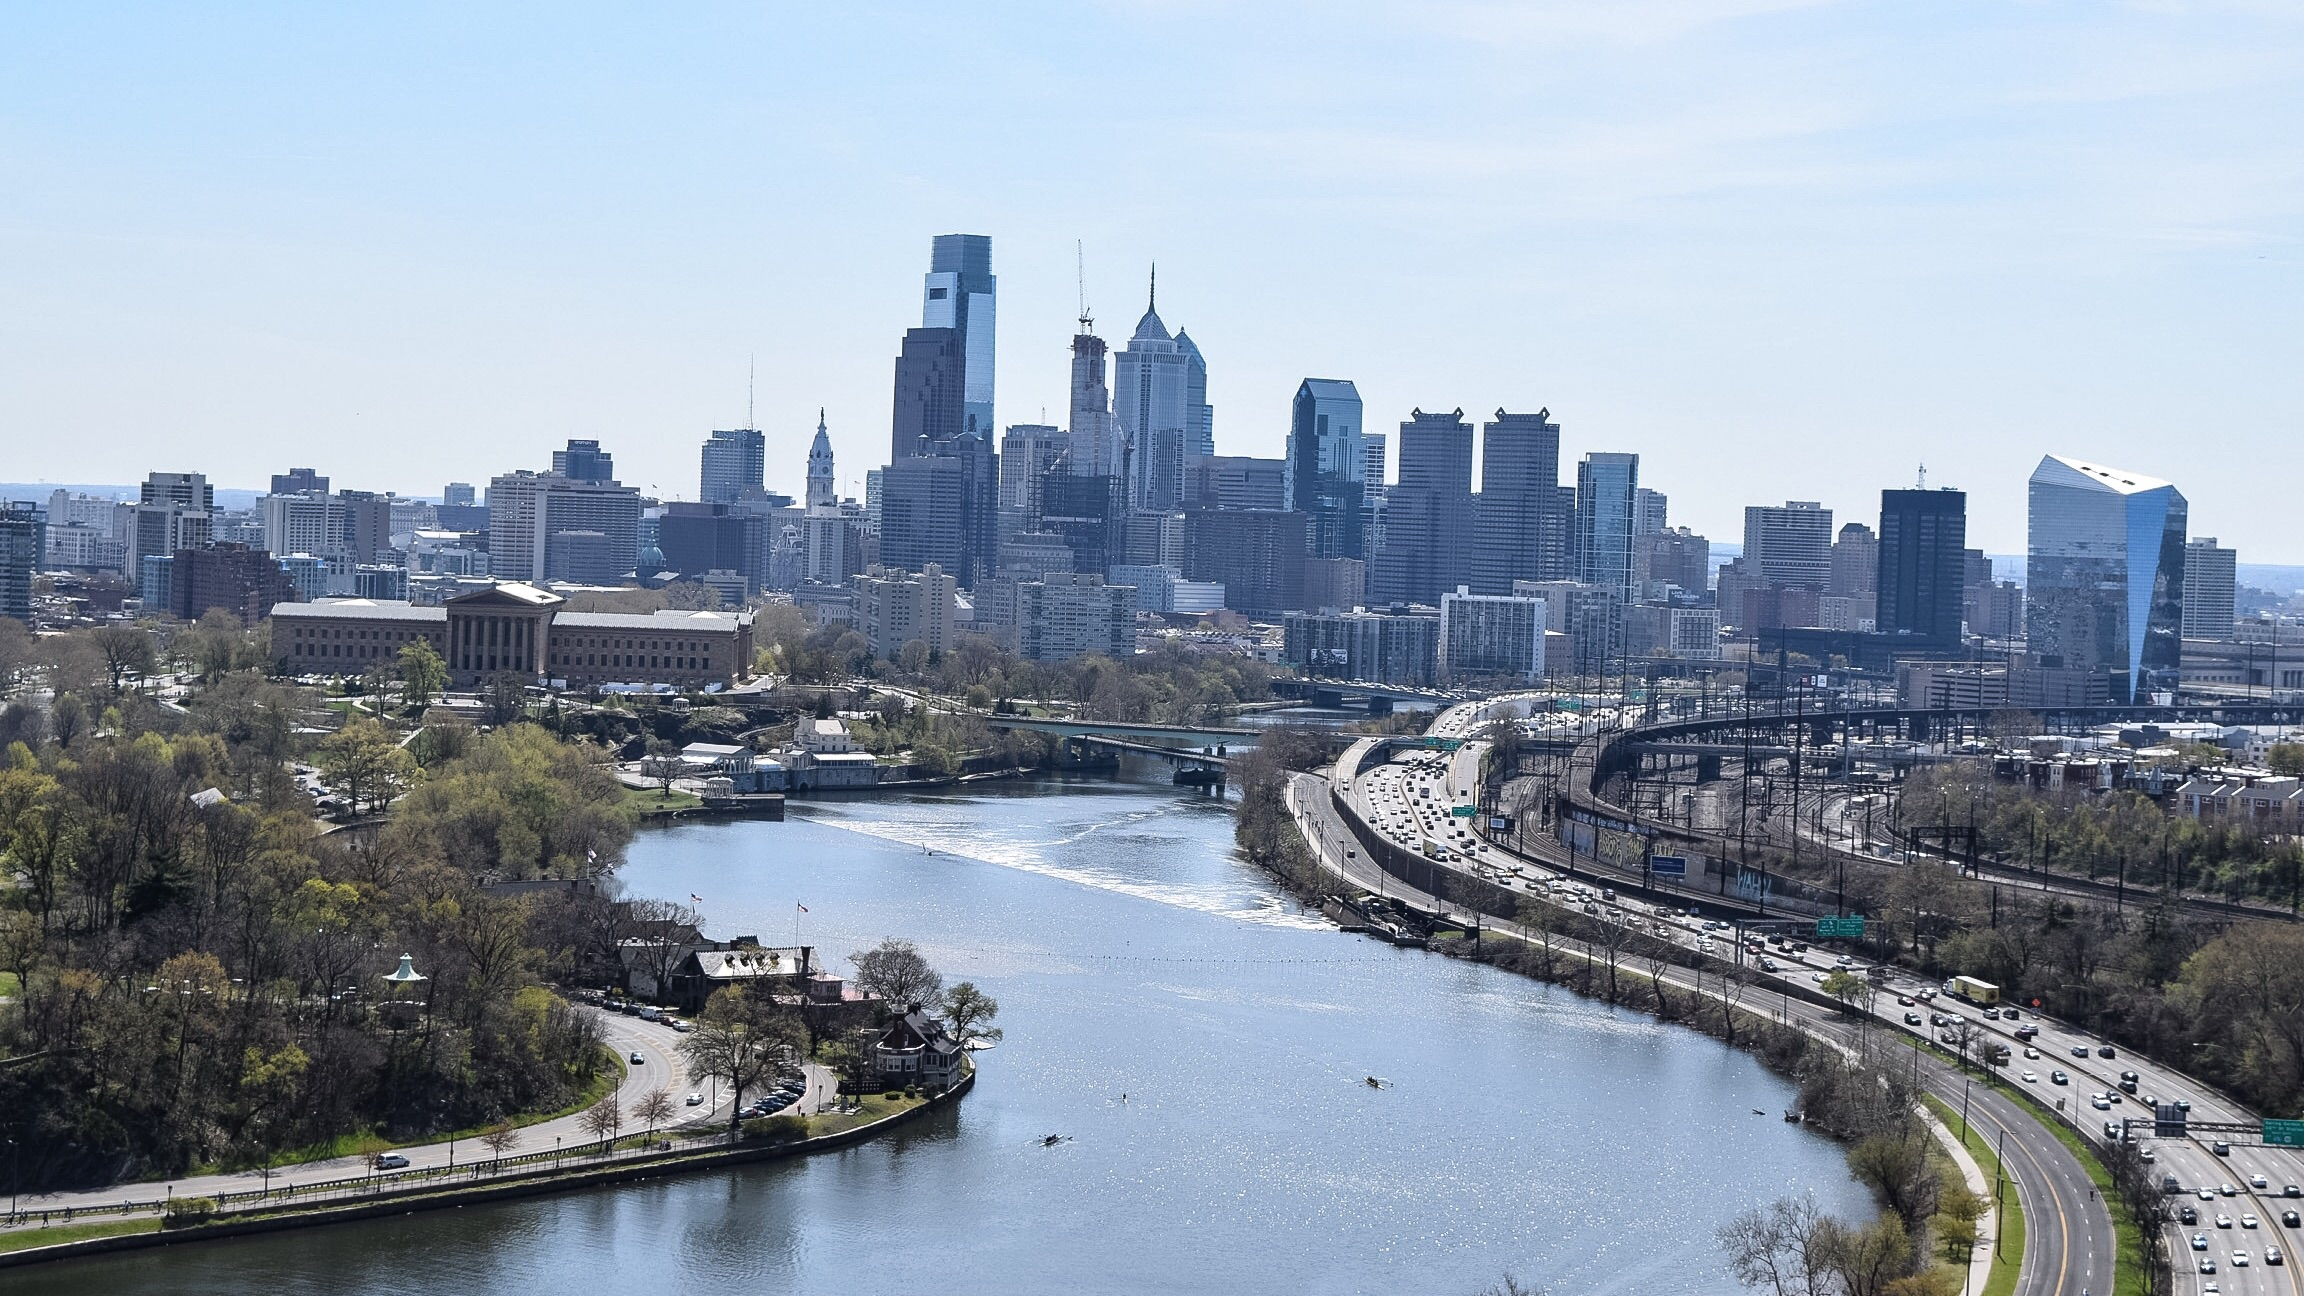 The view from the Zoo Balloon, which rises 400 feet above the ground to show a breathtaking view of Philadelphia and beyond